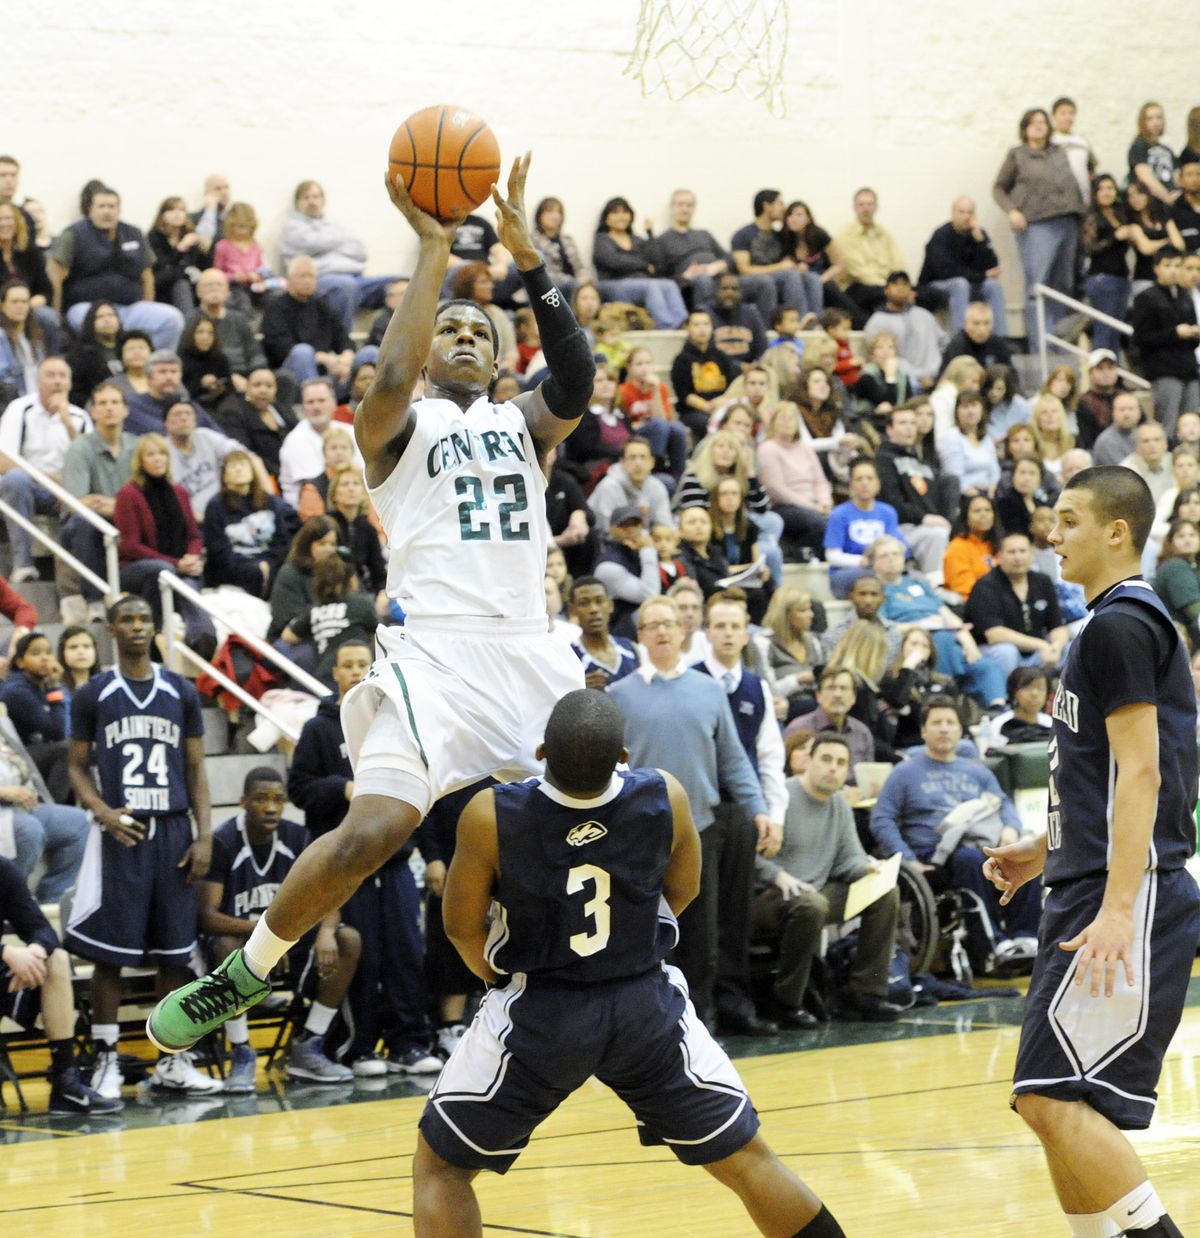 Plainfield Central's Derrick Marks drives to the basket around Plainfield South's Zach Singrabe.